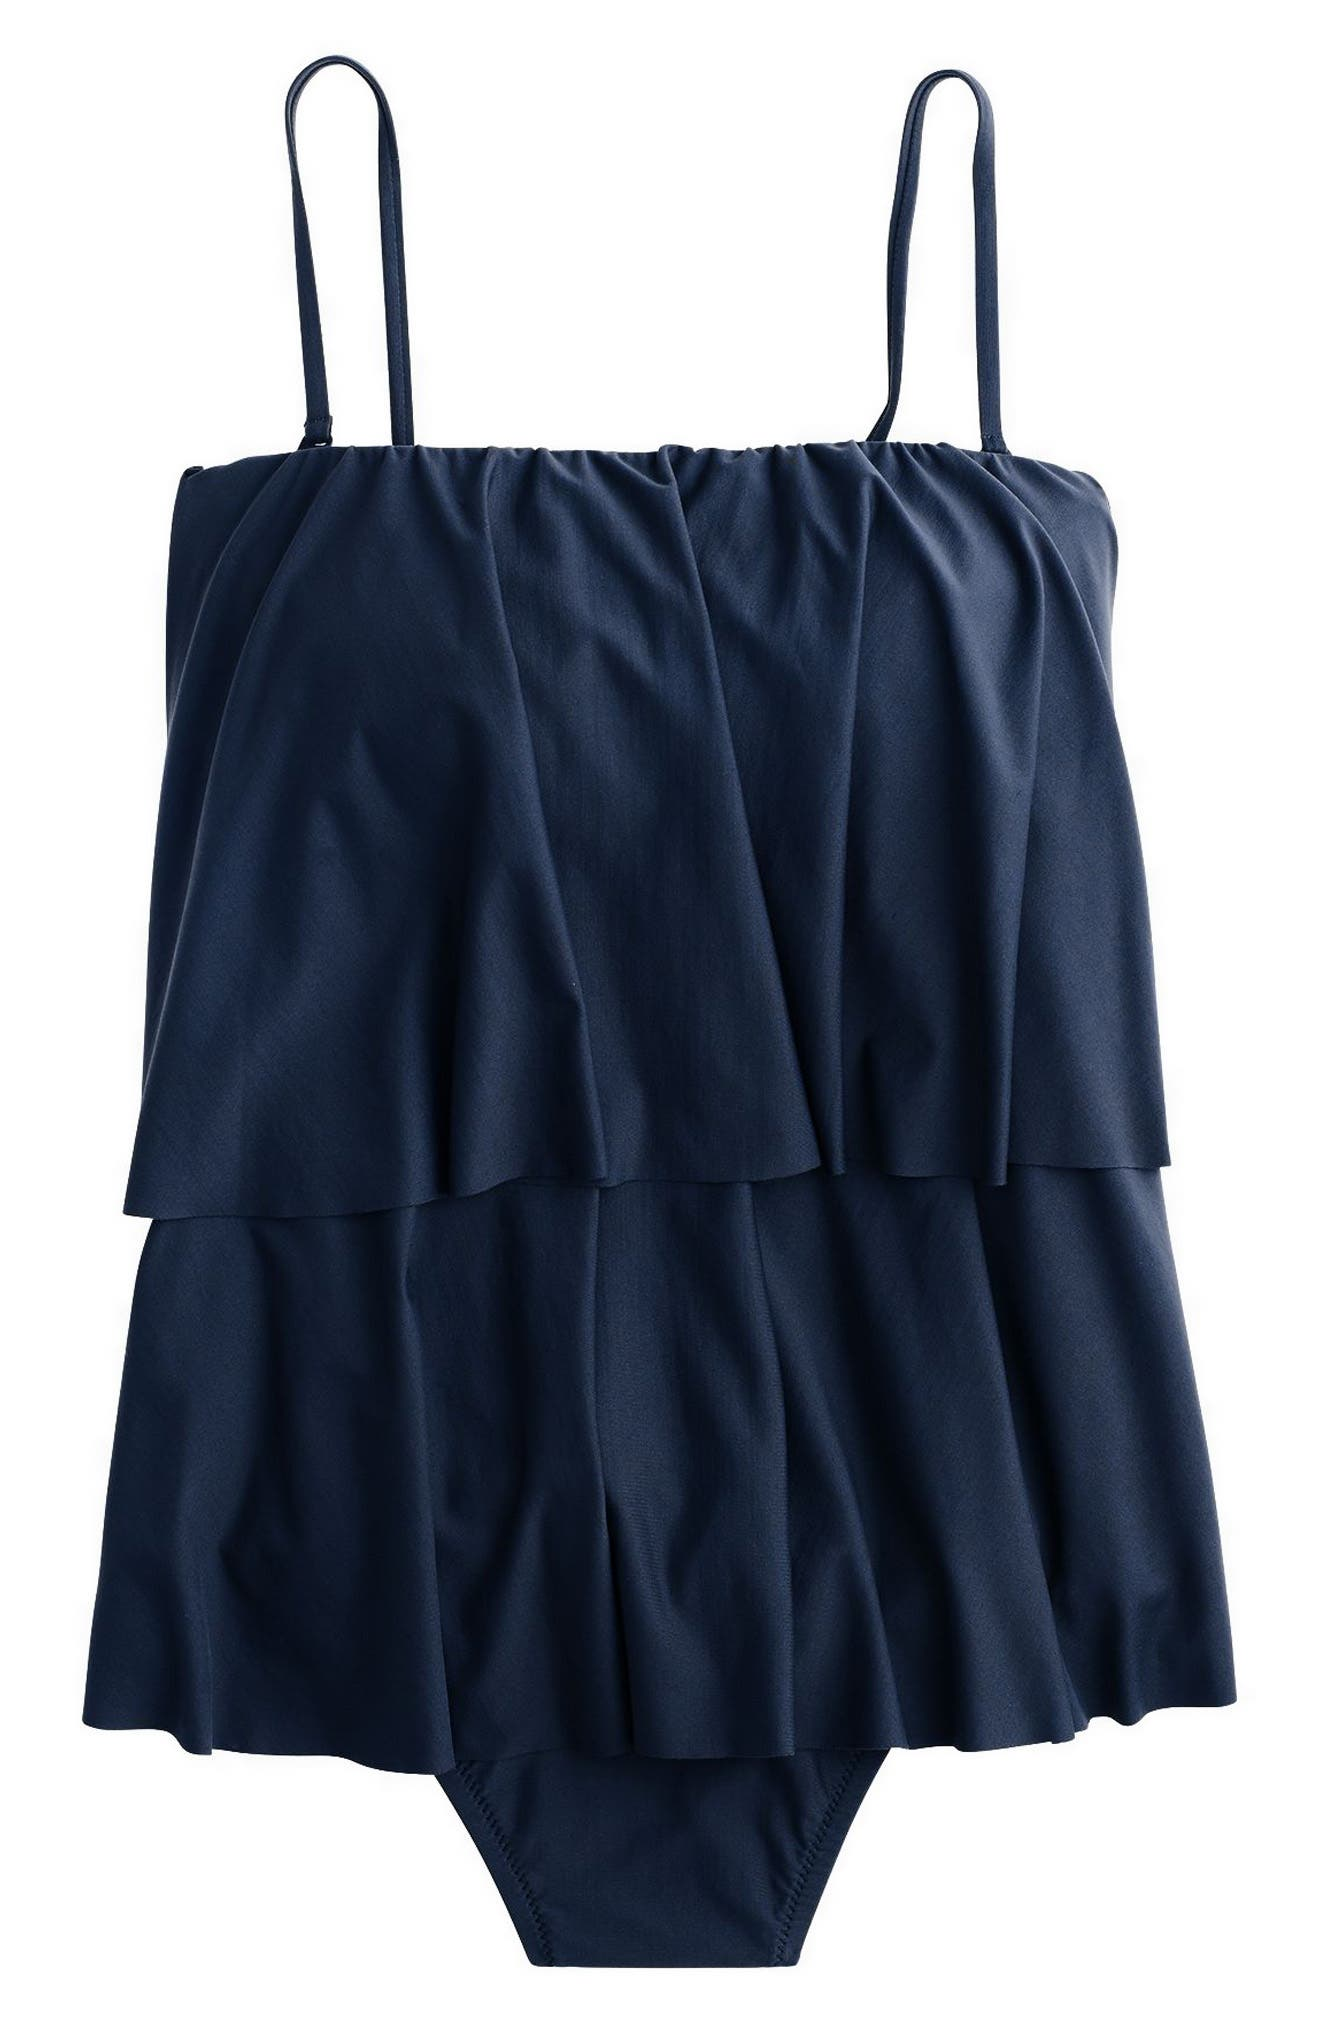 Ruffle Cami Tank One-Piece Swimsuit,                             Alternate thumbnail 3, color,                             Navy